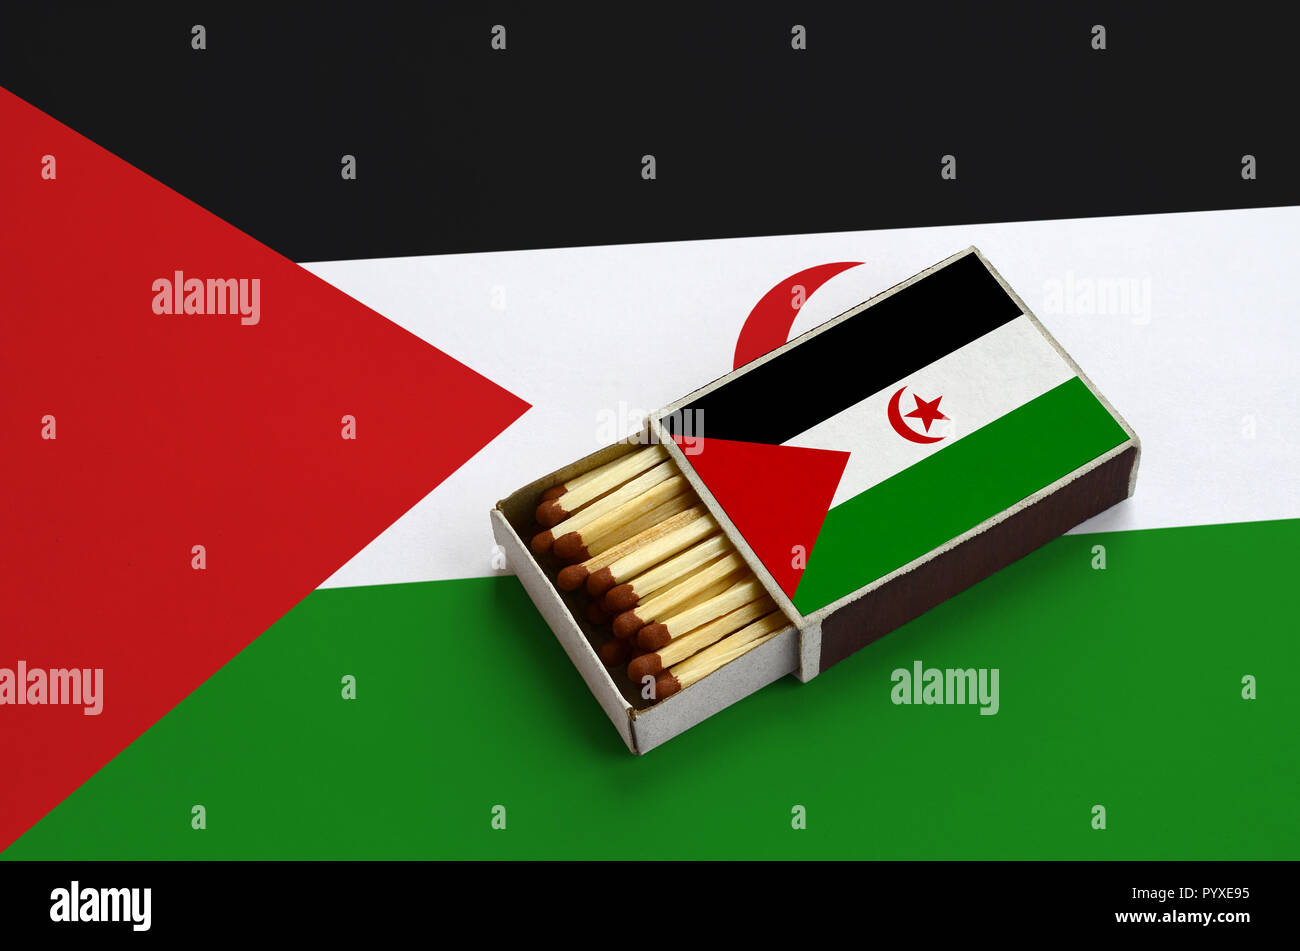 Western Sahara flag  is shown in an open matchbox, which is filled with matches and lies on a large flag. Stock Photo